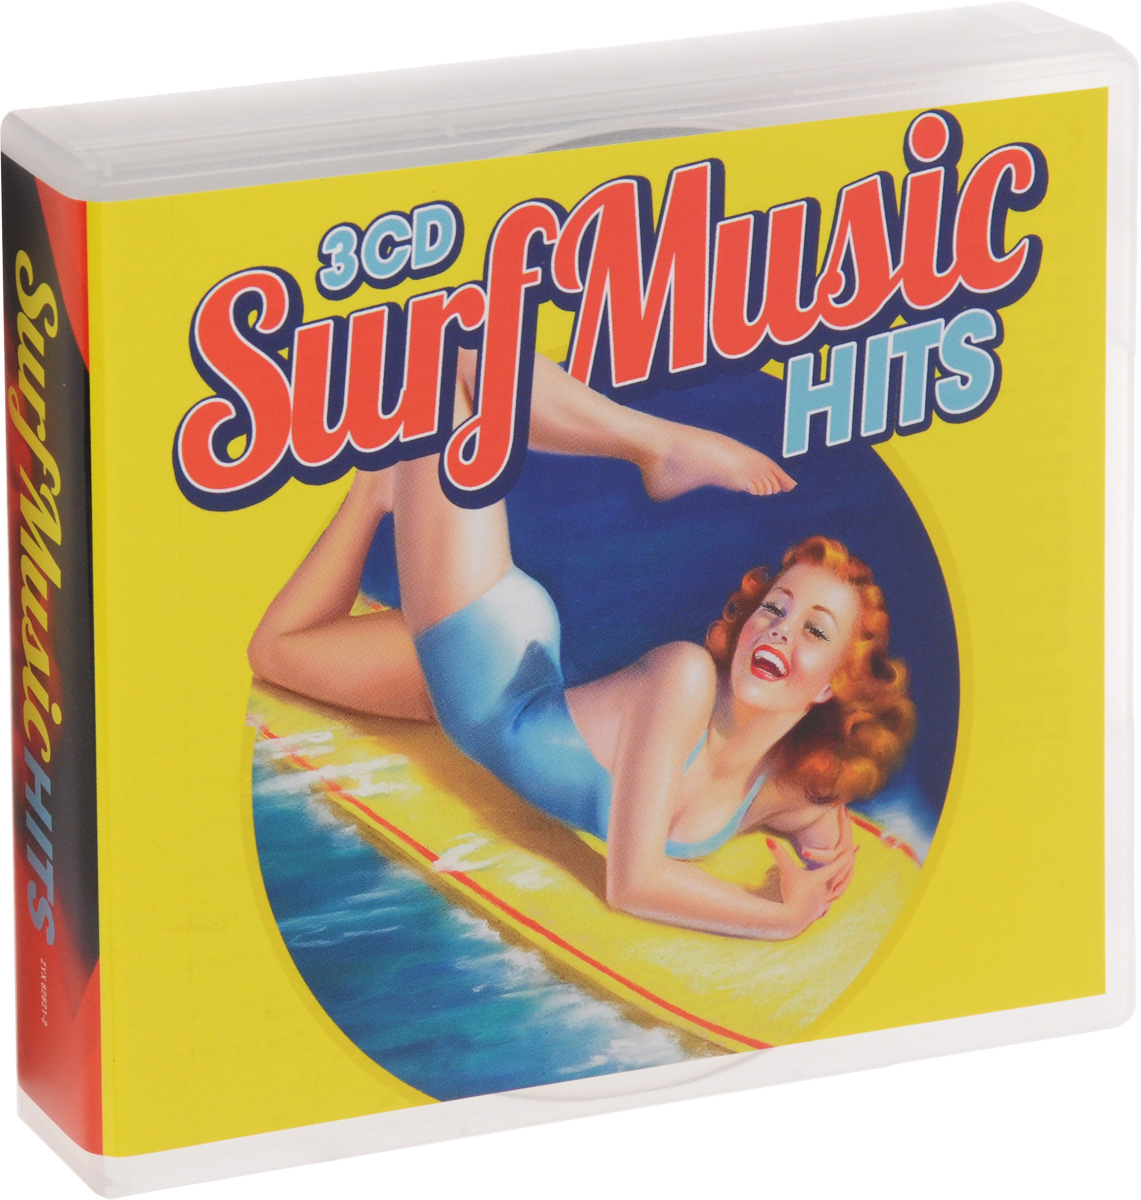 The Beach Boys,The Ventures,Dick Dale & His Del-Tones,Bob Vaught,The Renegaids,The Challengers,The Tornadoes,Shean,Jenkins,Jim Waller,The Deltas,Gene,The Esquires,The Surfaris,The Rockin' Rebels,The Dave Myers Effect,Slacktone,Les Jr. Brown Surf Music Hits (3 CD)